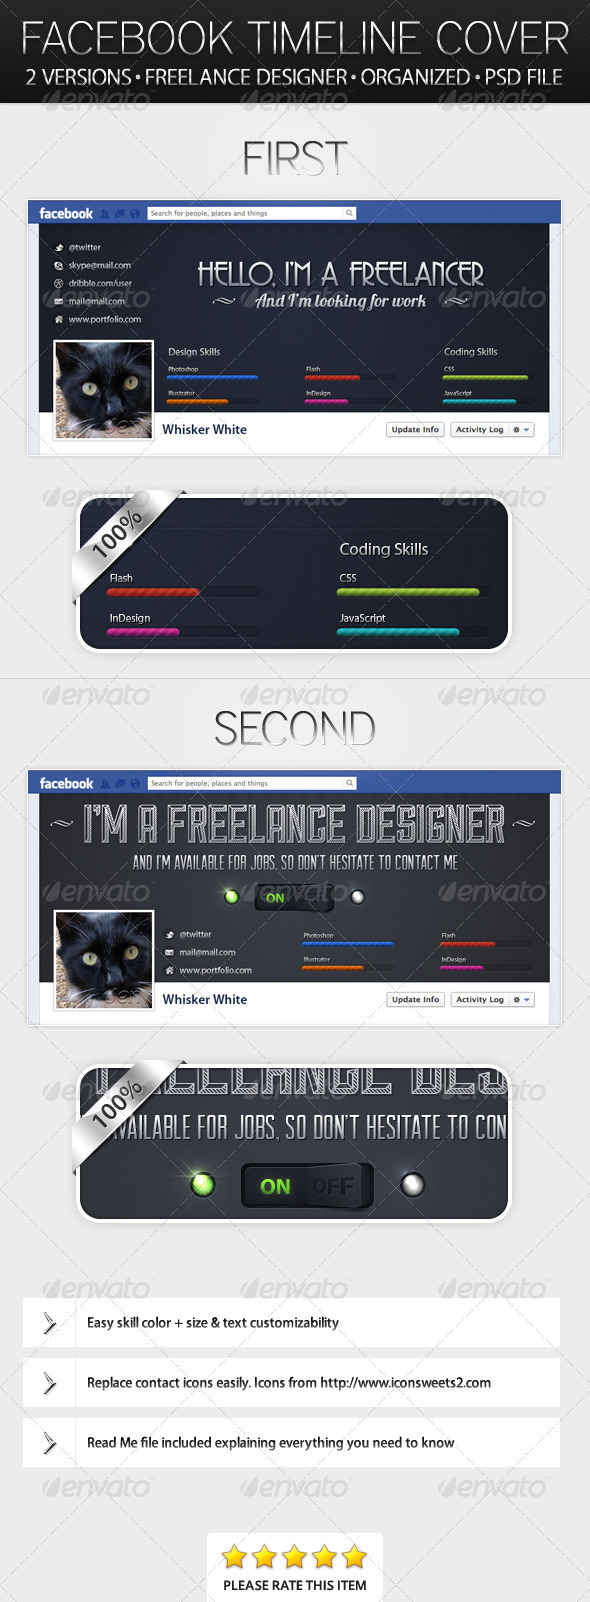 Two Freelance Designer Timeline Covers - Facebook Timeline Covers Social Media